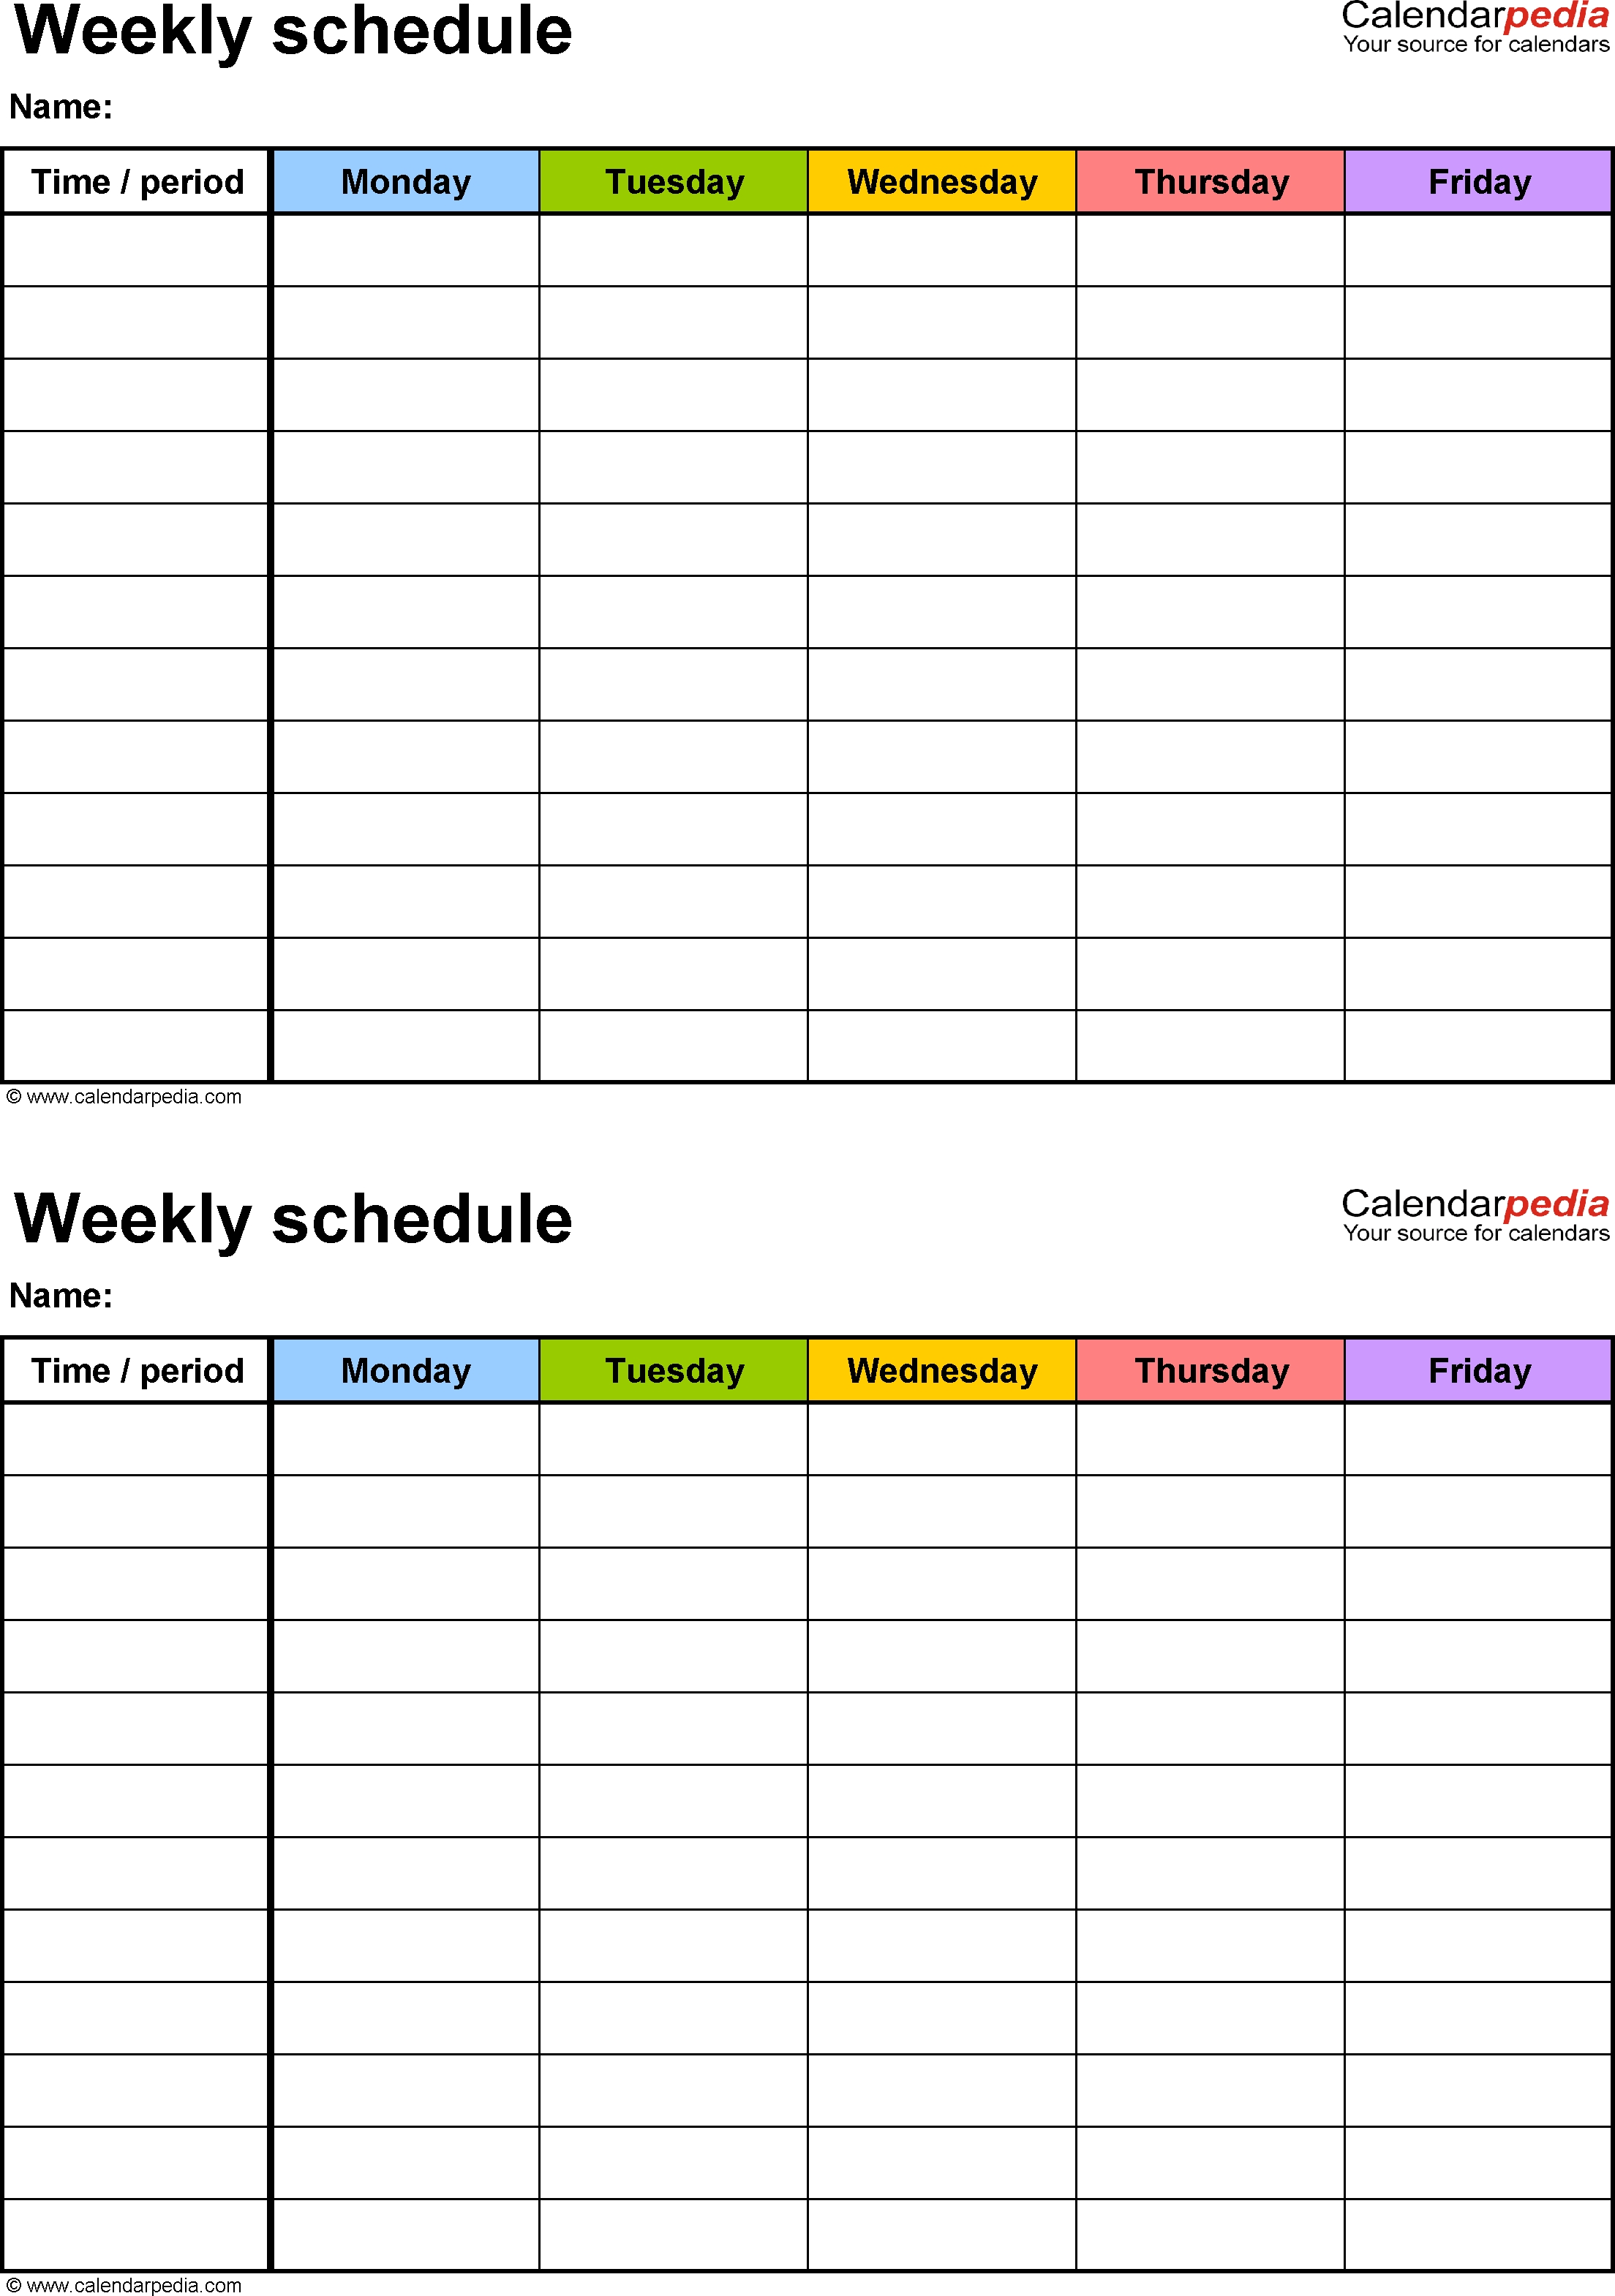 Free Weekly Schedule Templates For Word - 18 Templates inside 2 Week Blank Calendar Printable